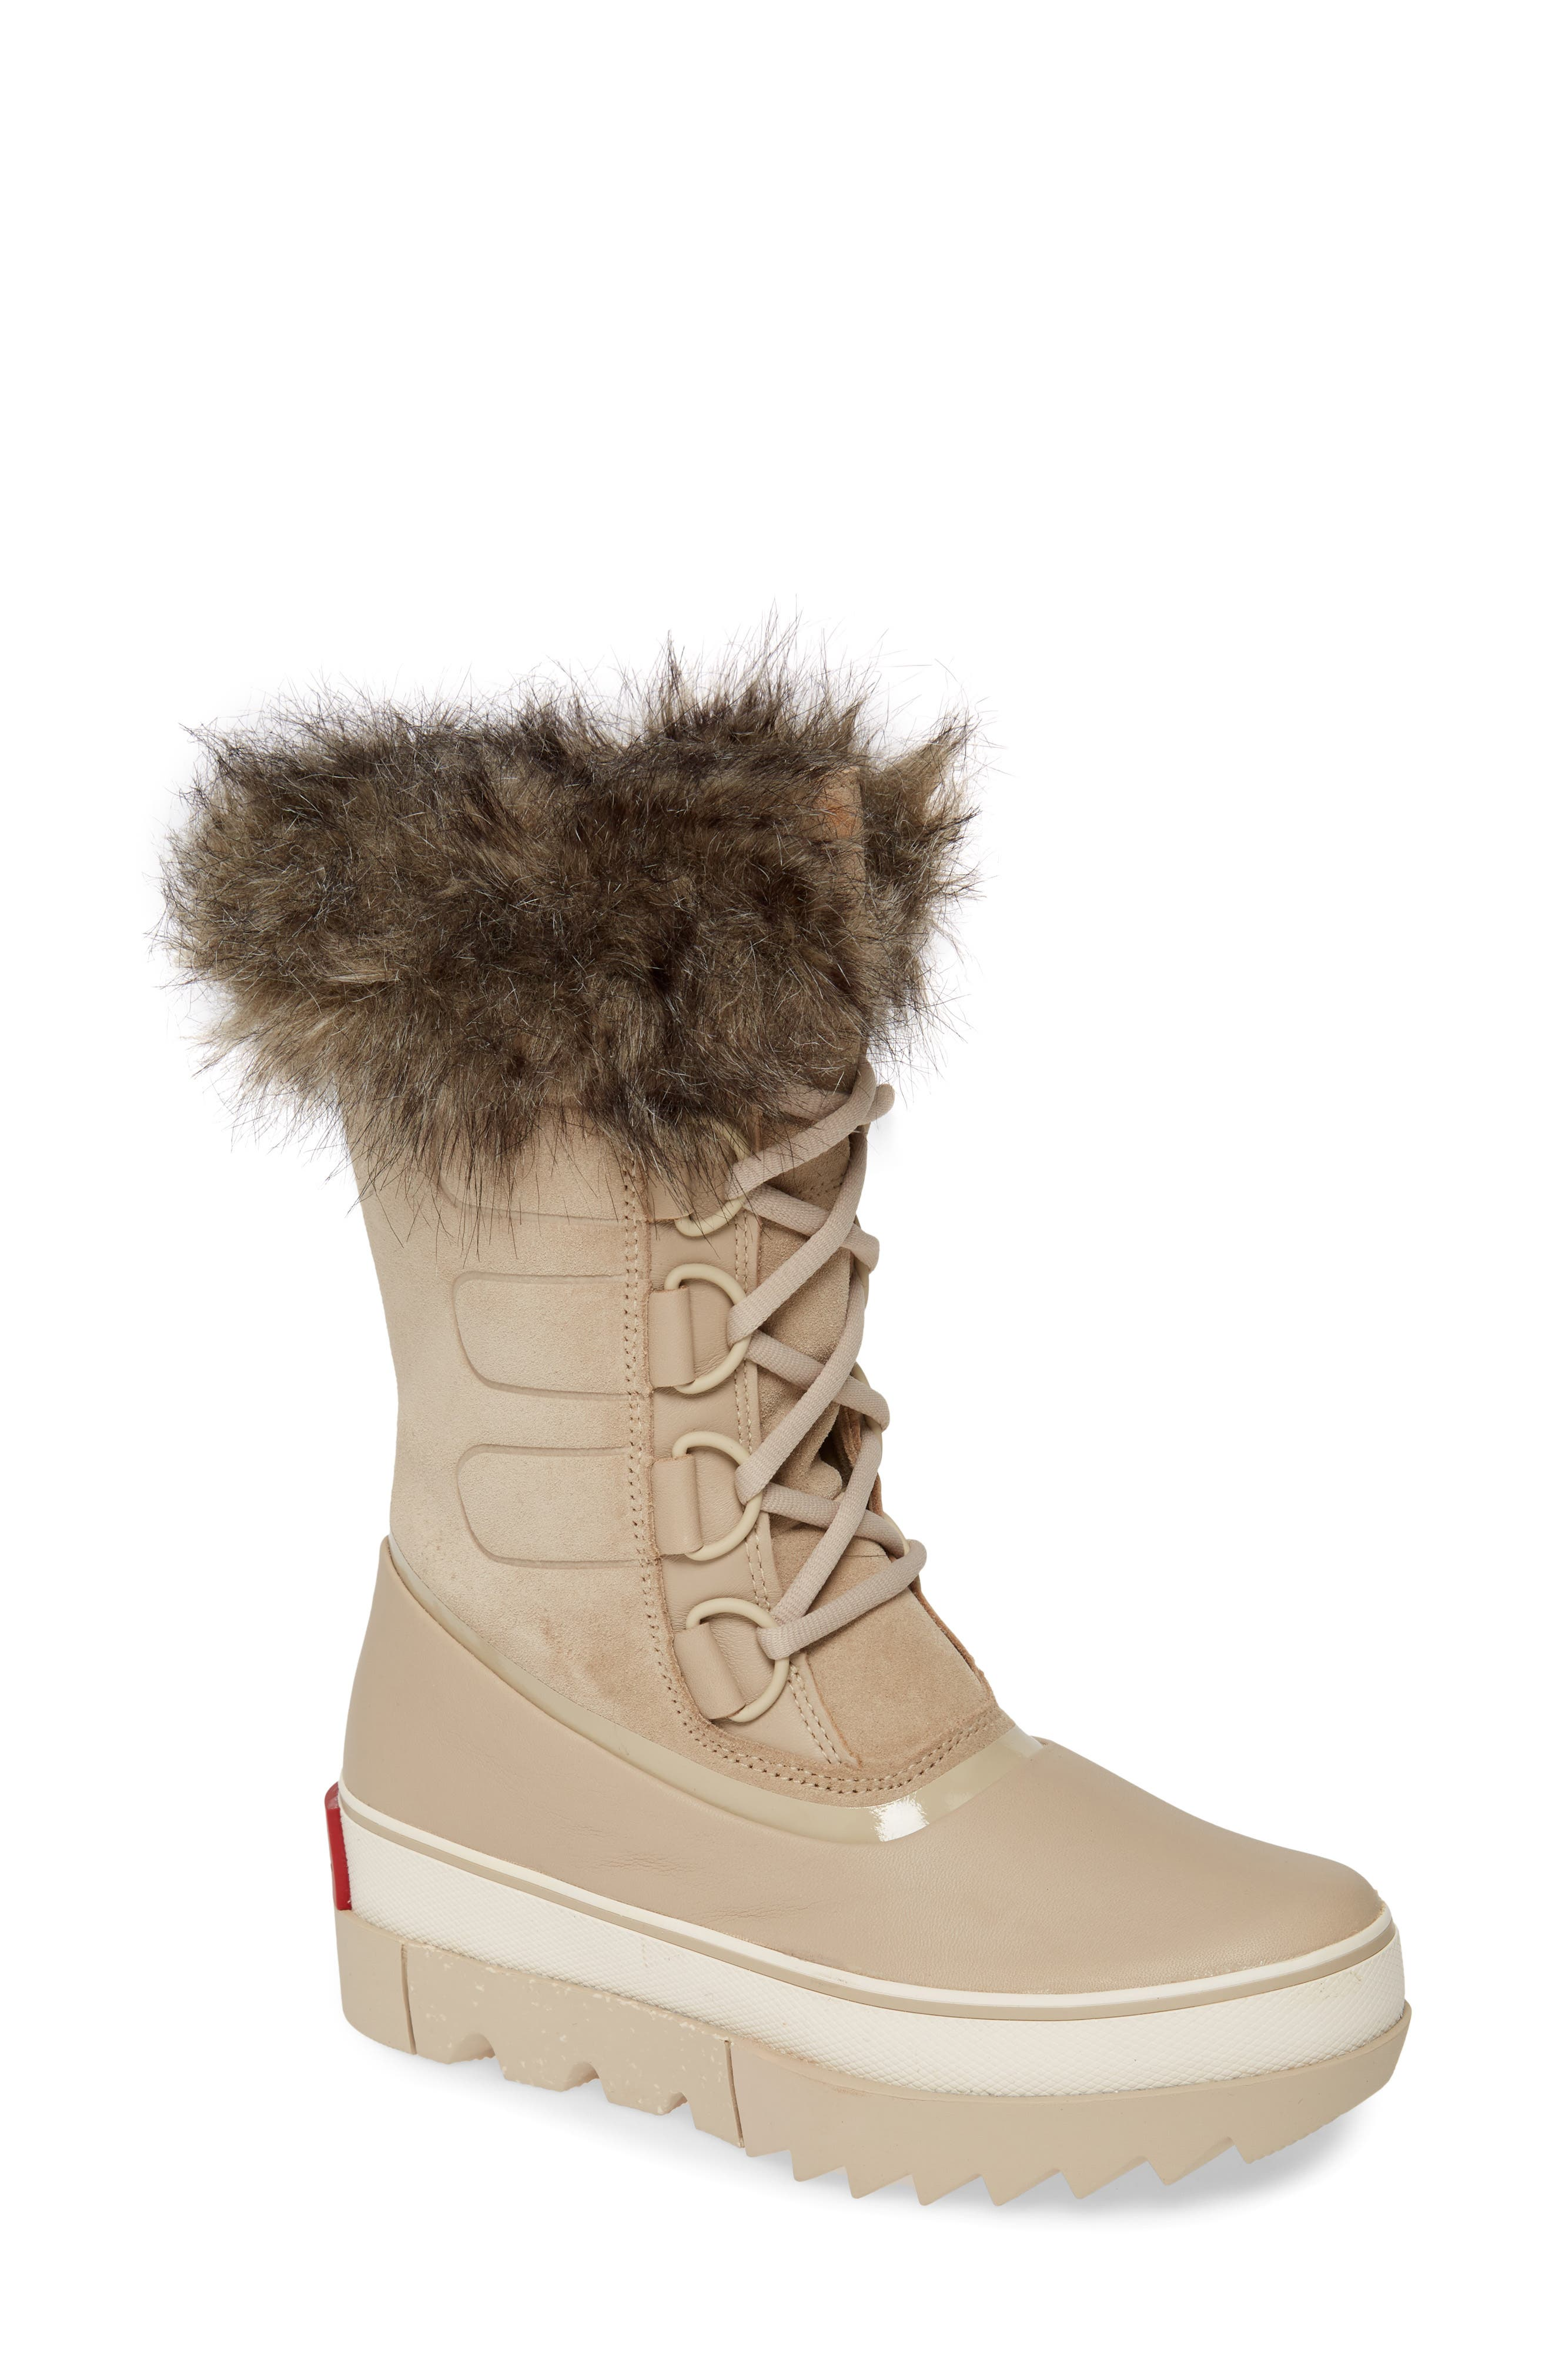 SOREL Joan of Arctic Next Faux Fur Waterproof Snow Boot (Women)